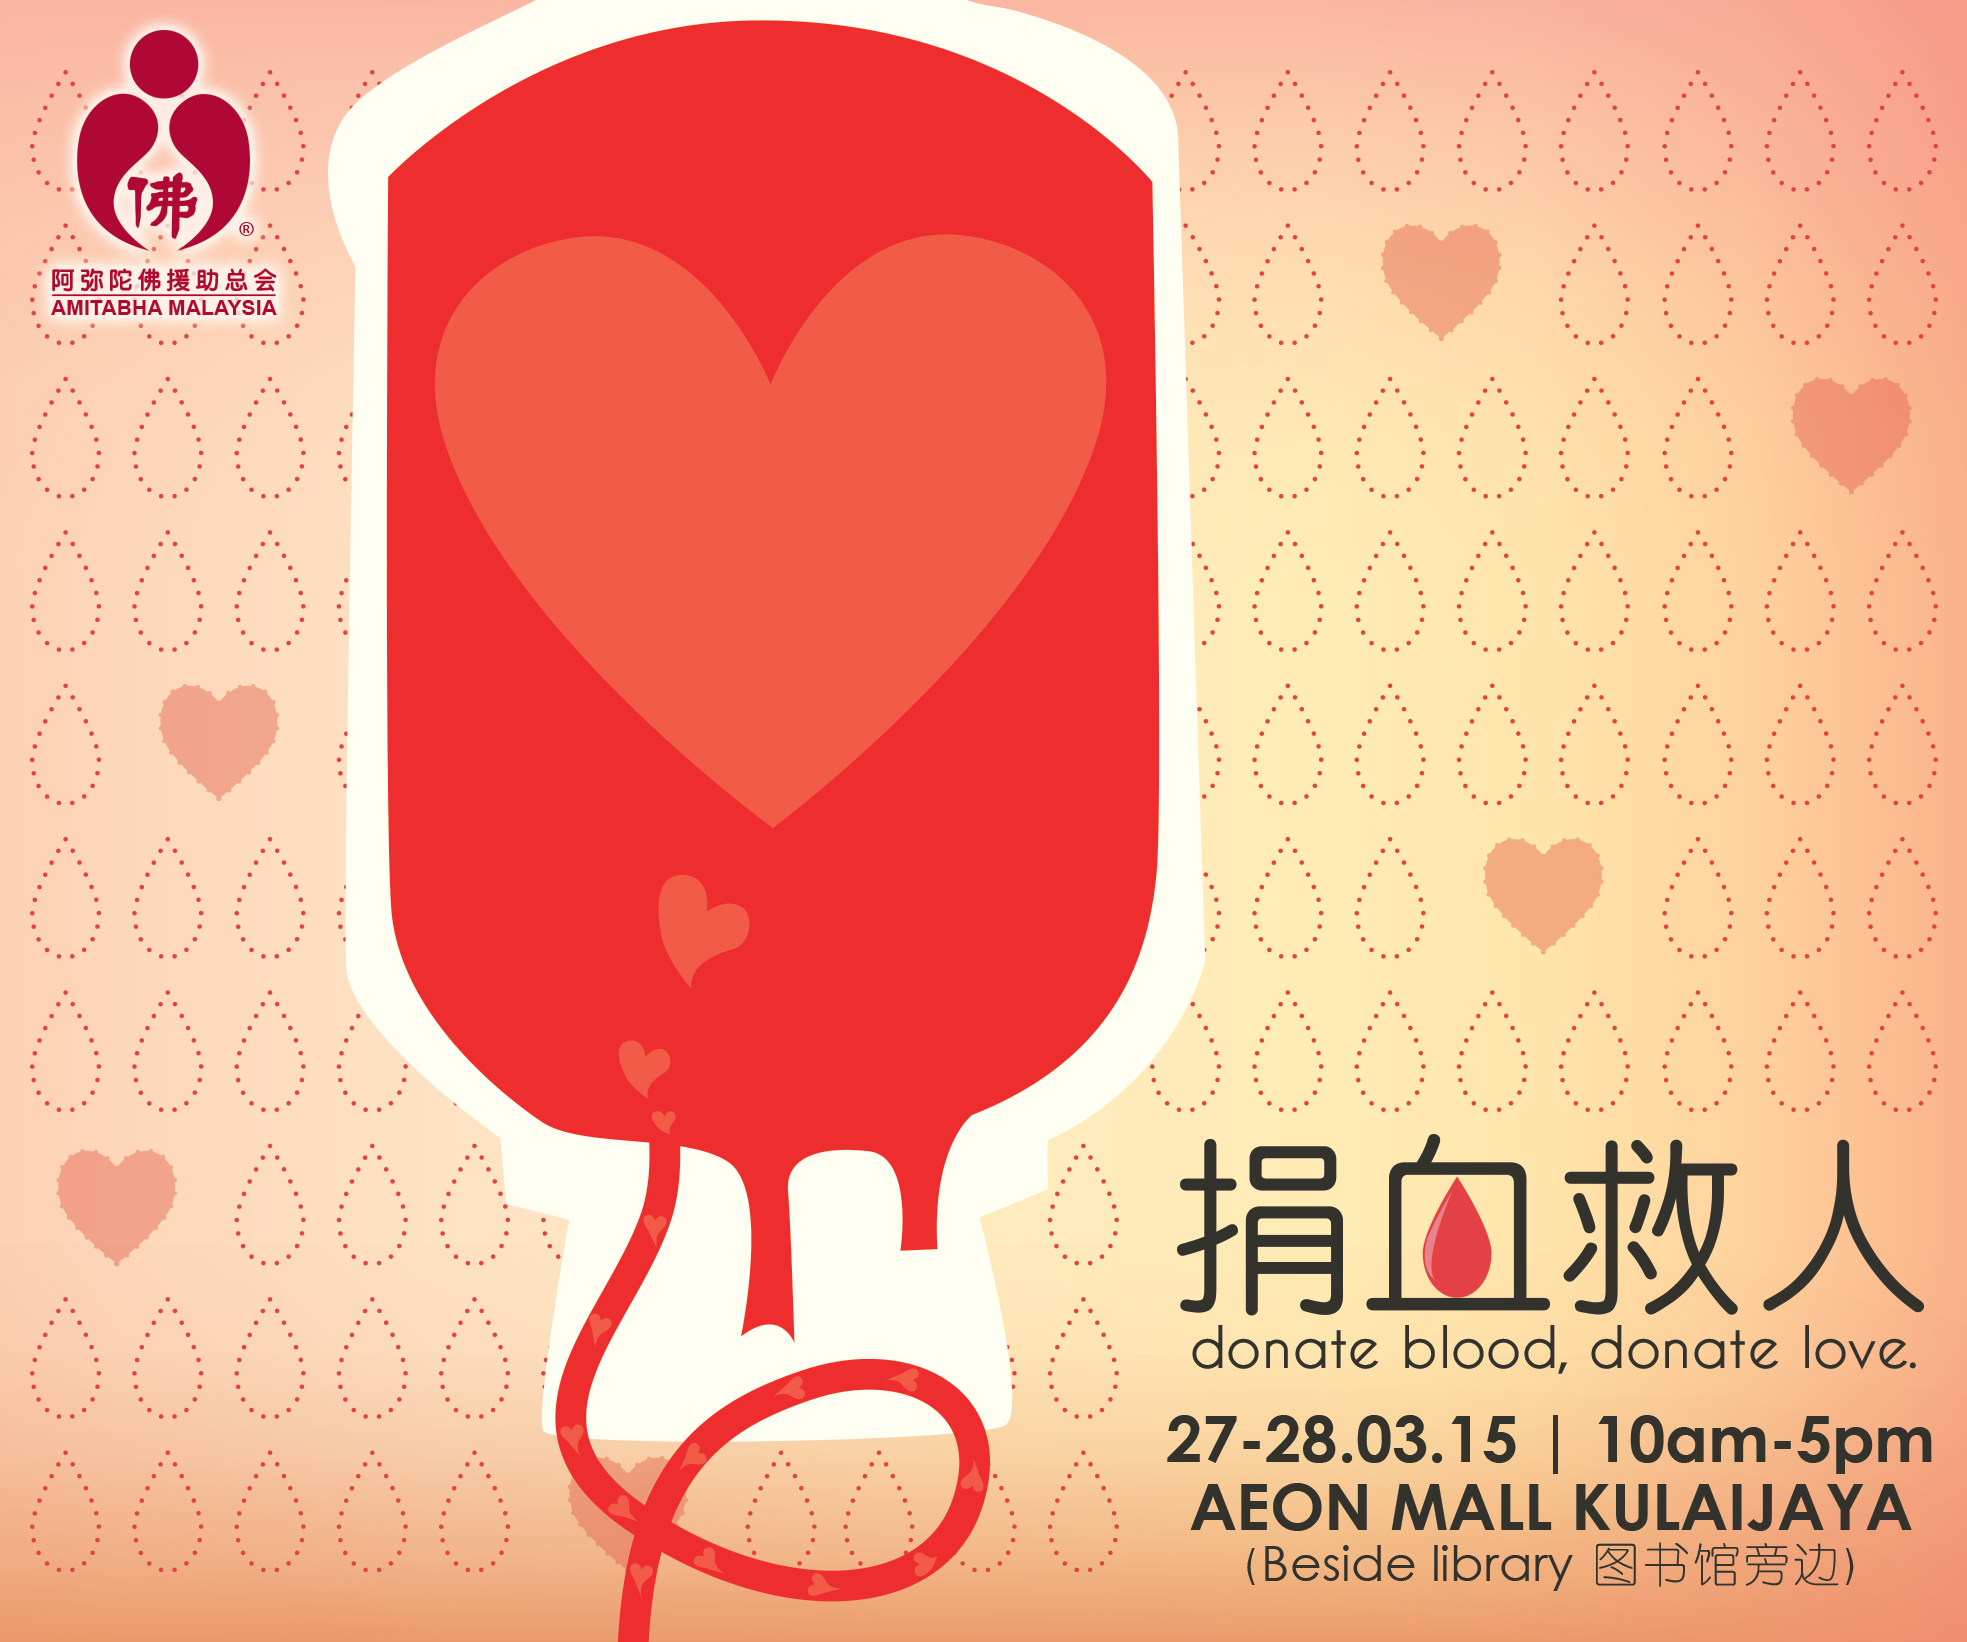 fb_post_blood_donation_472x394px-3